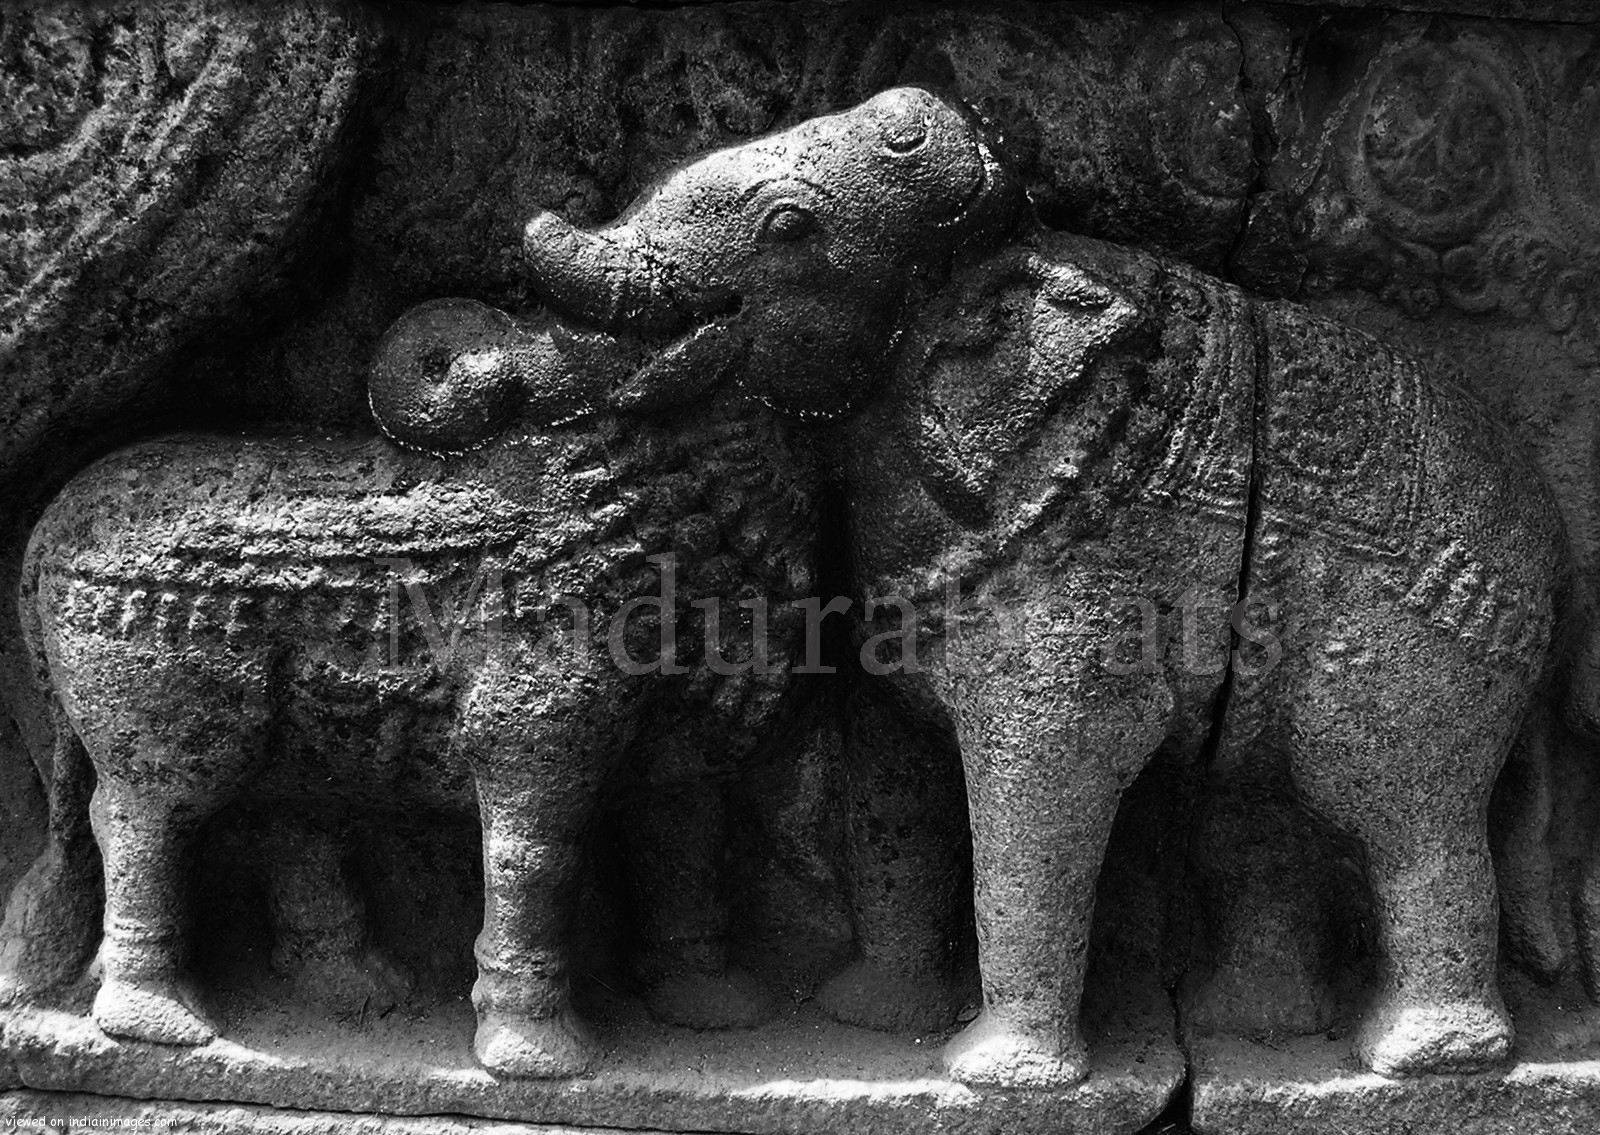 Ox and Elephant-seems-like-Twins-sculpture,Two in one sculpture, Indian temple sculpture